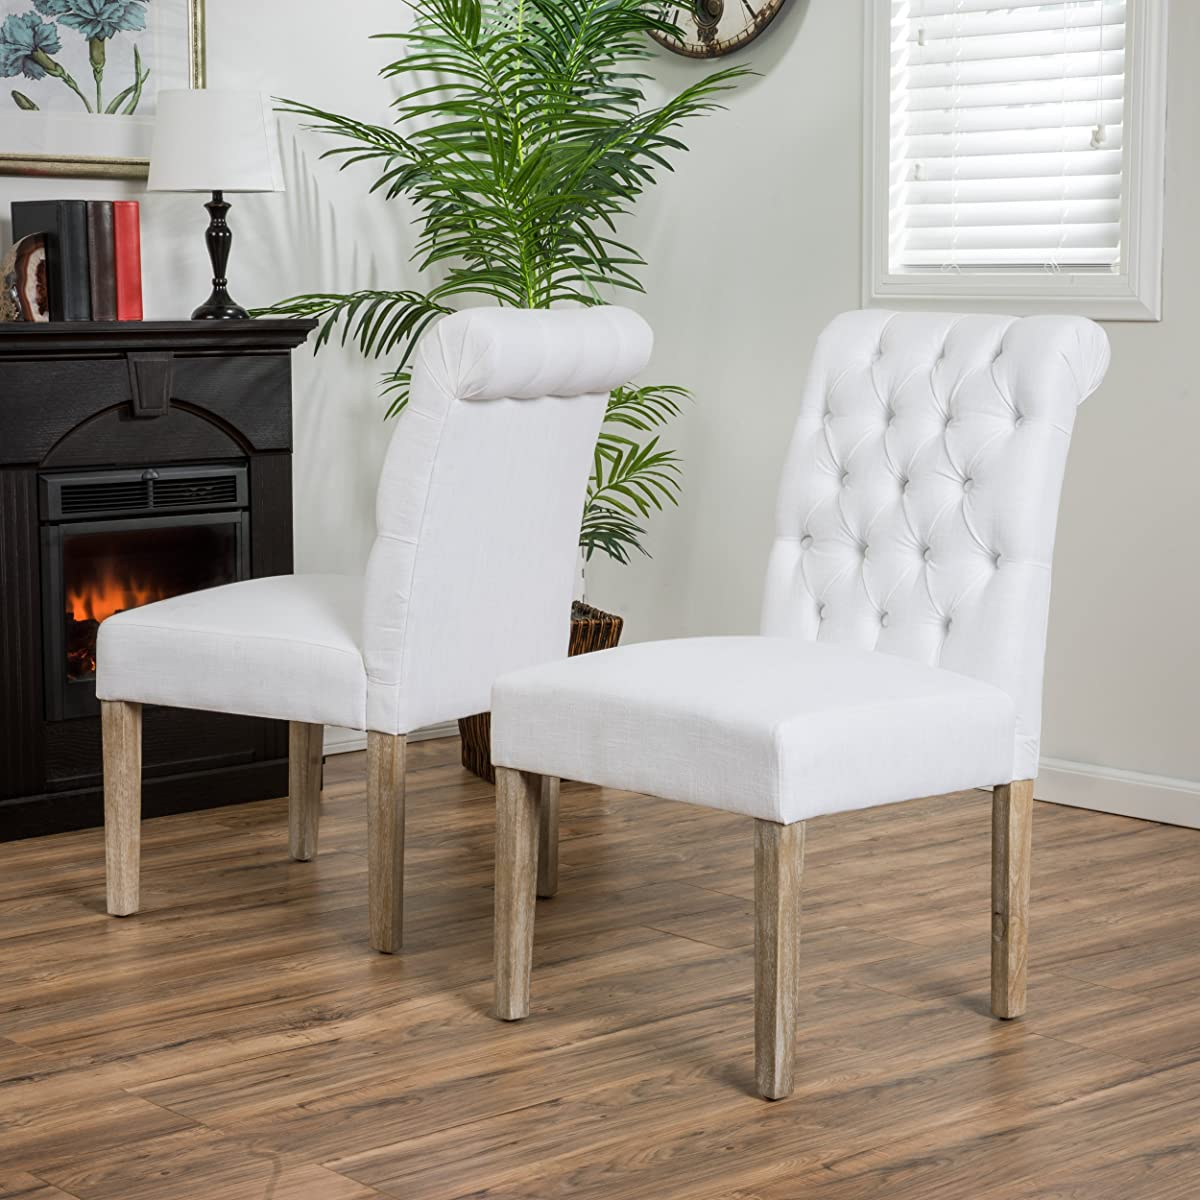 Elmerson Roll Back Off-White Fabric Dining Chairs (Set of 2)